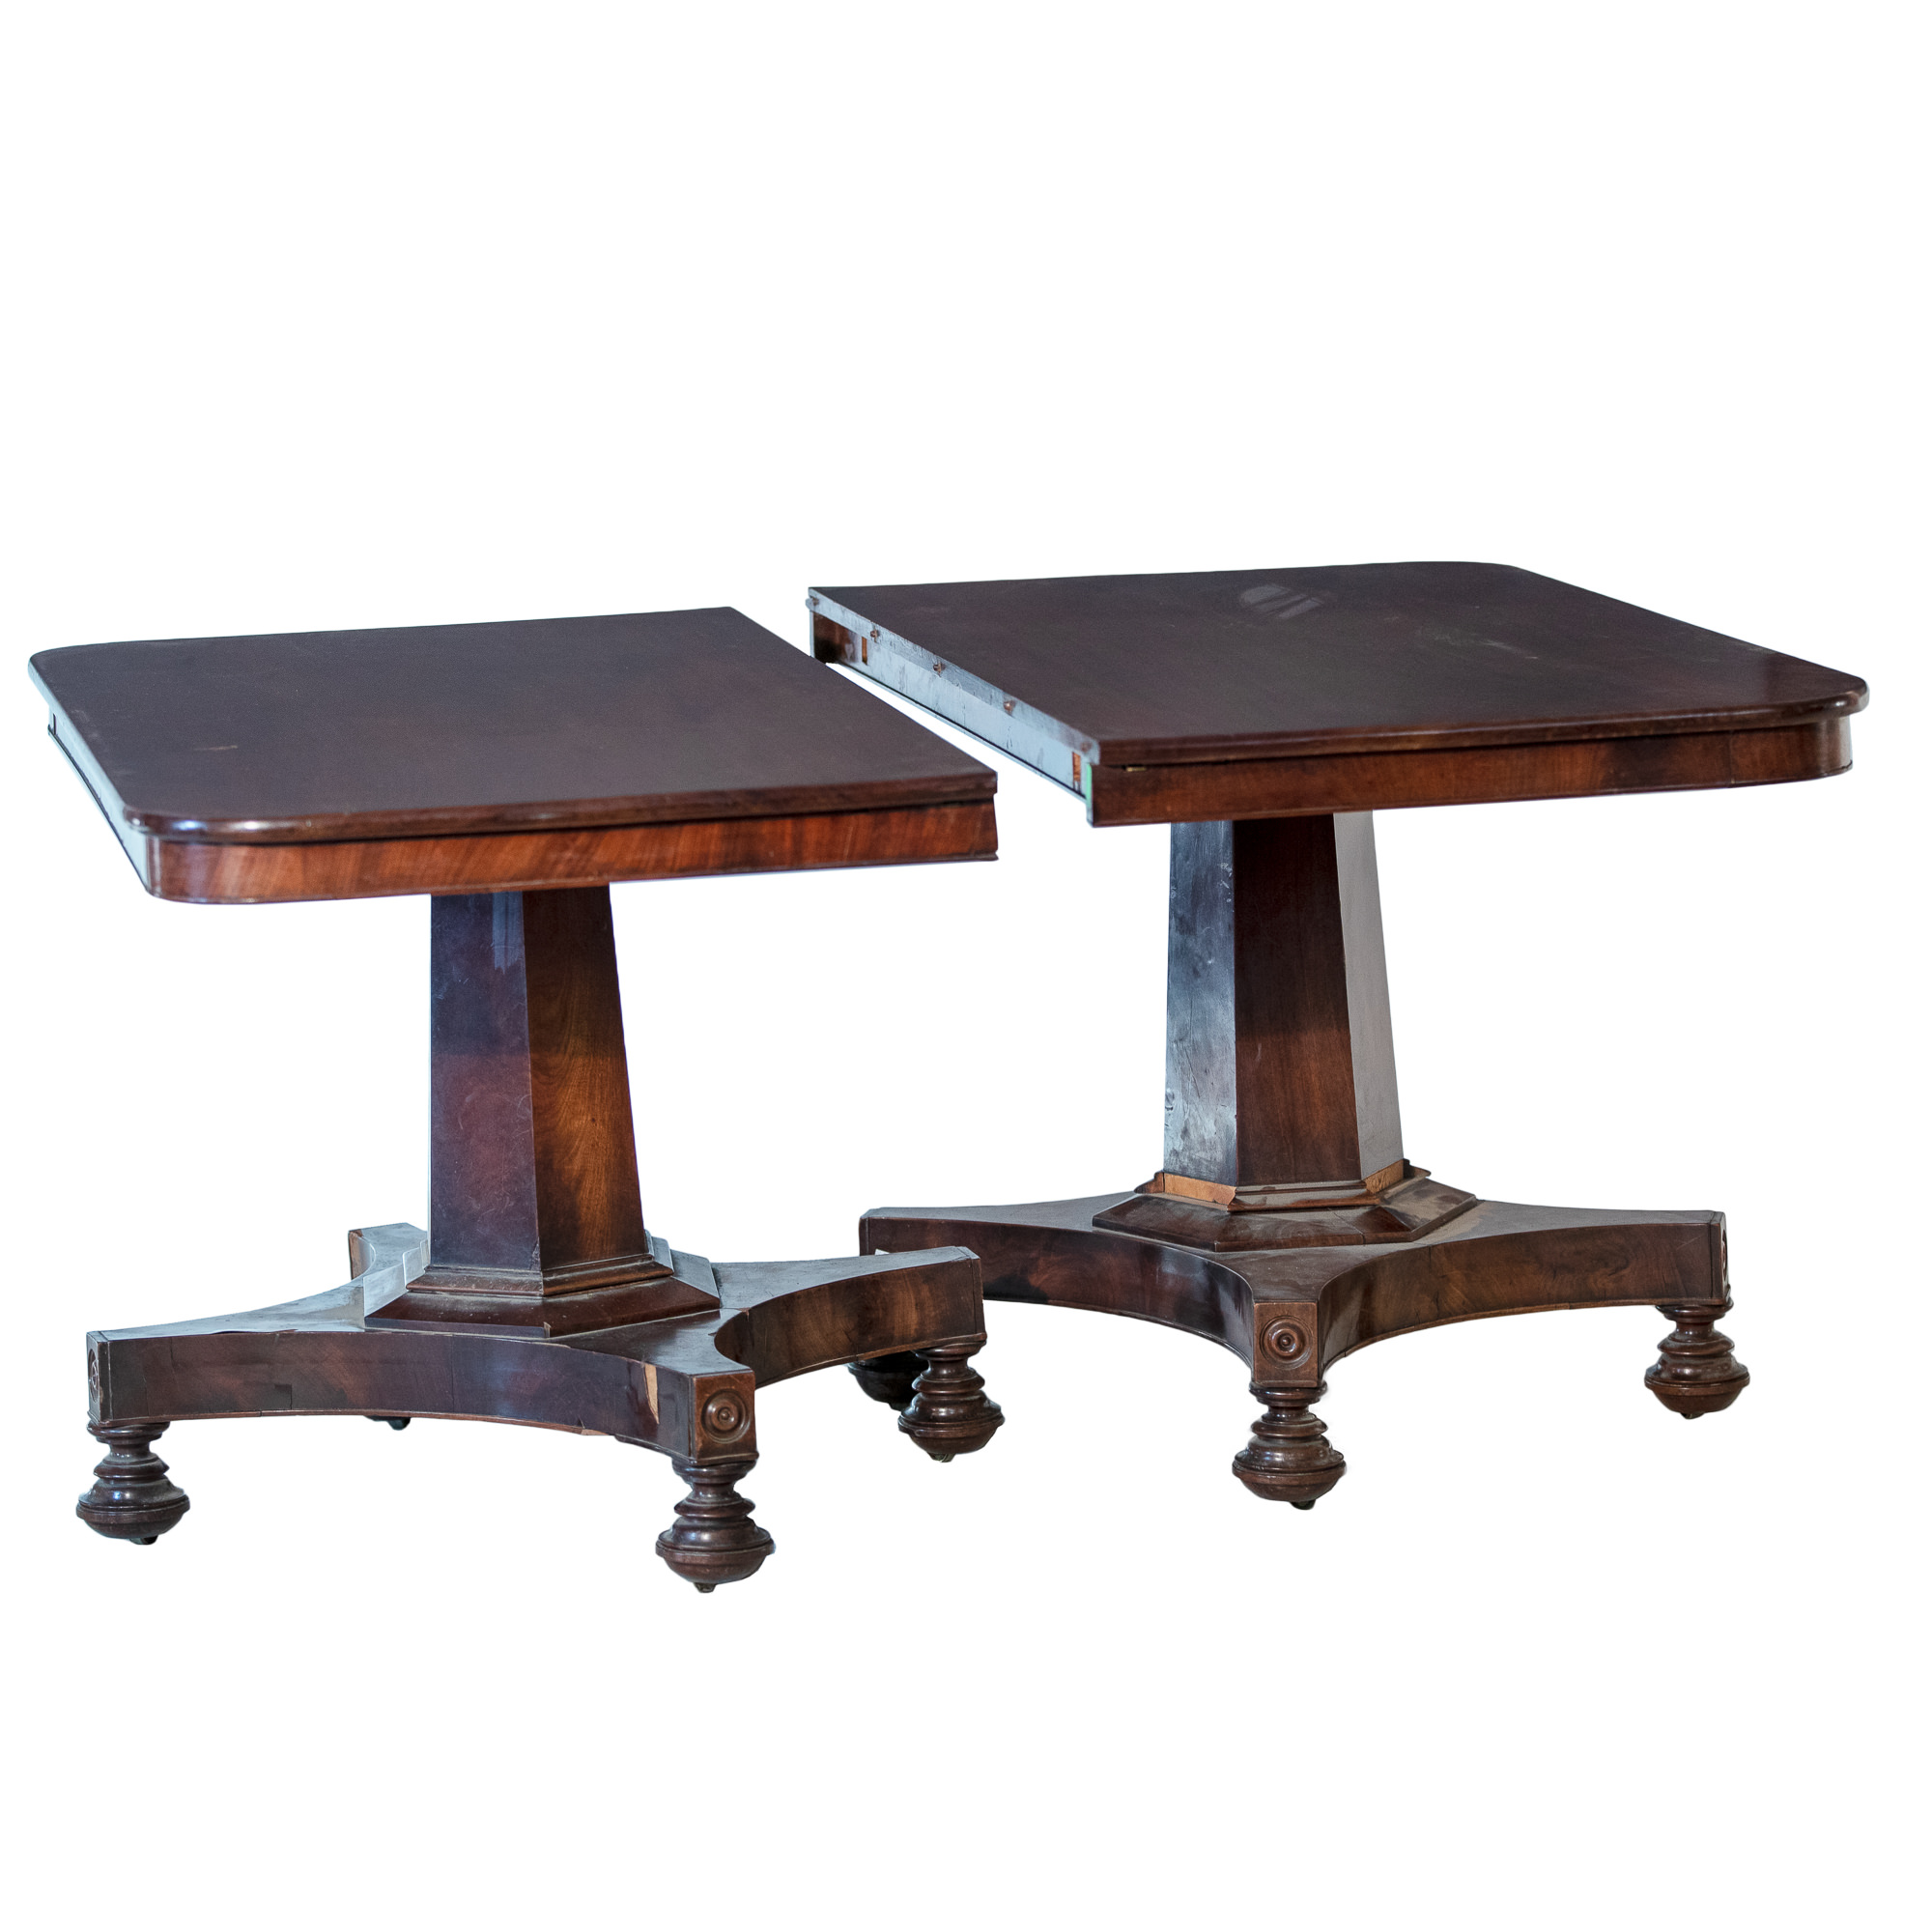 'Early Victorian Mahogany Twin Pedestal Extension Table Circa 1840'